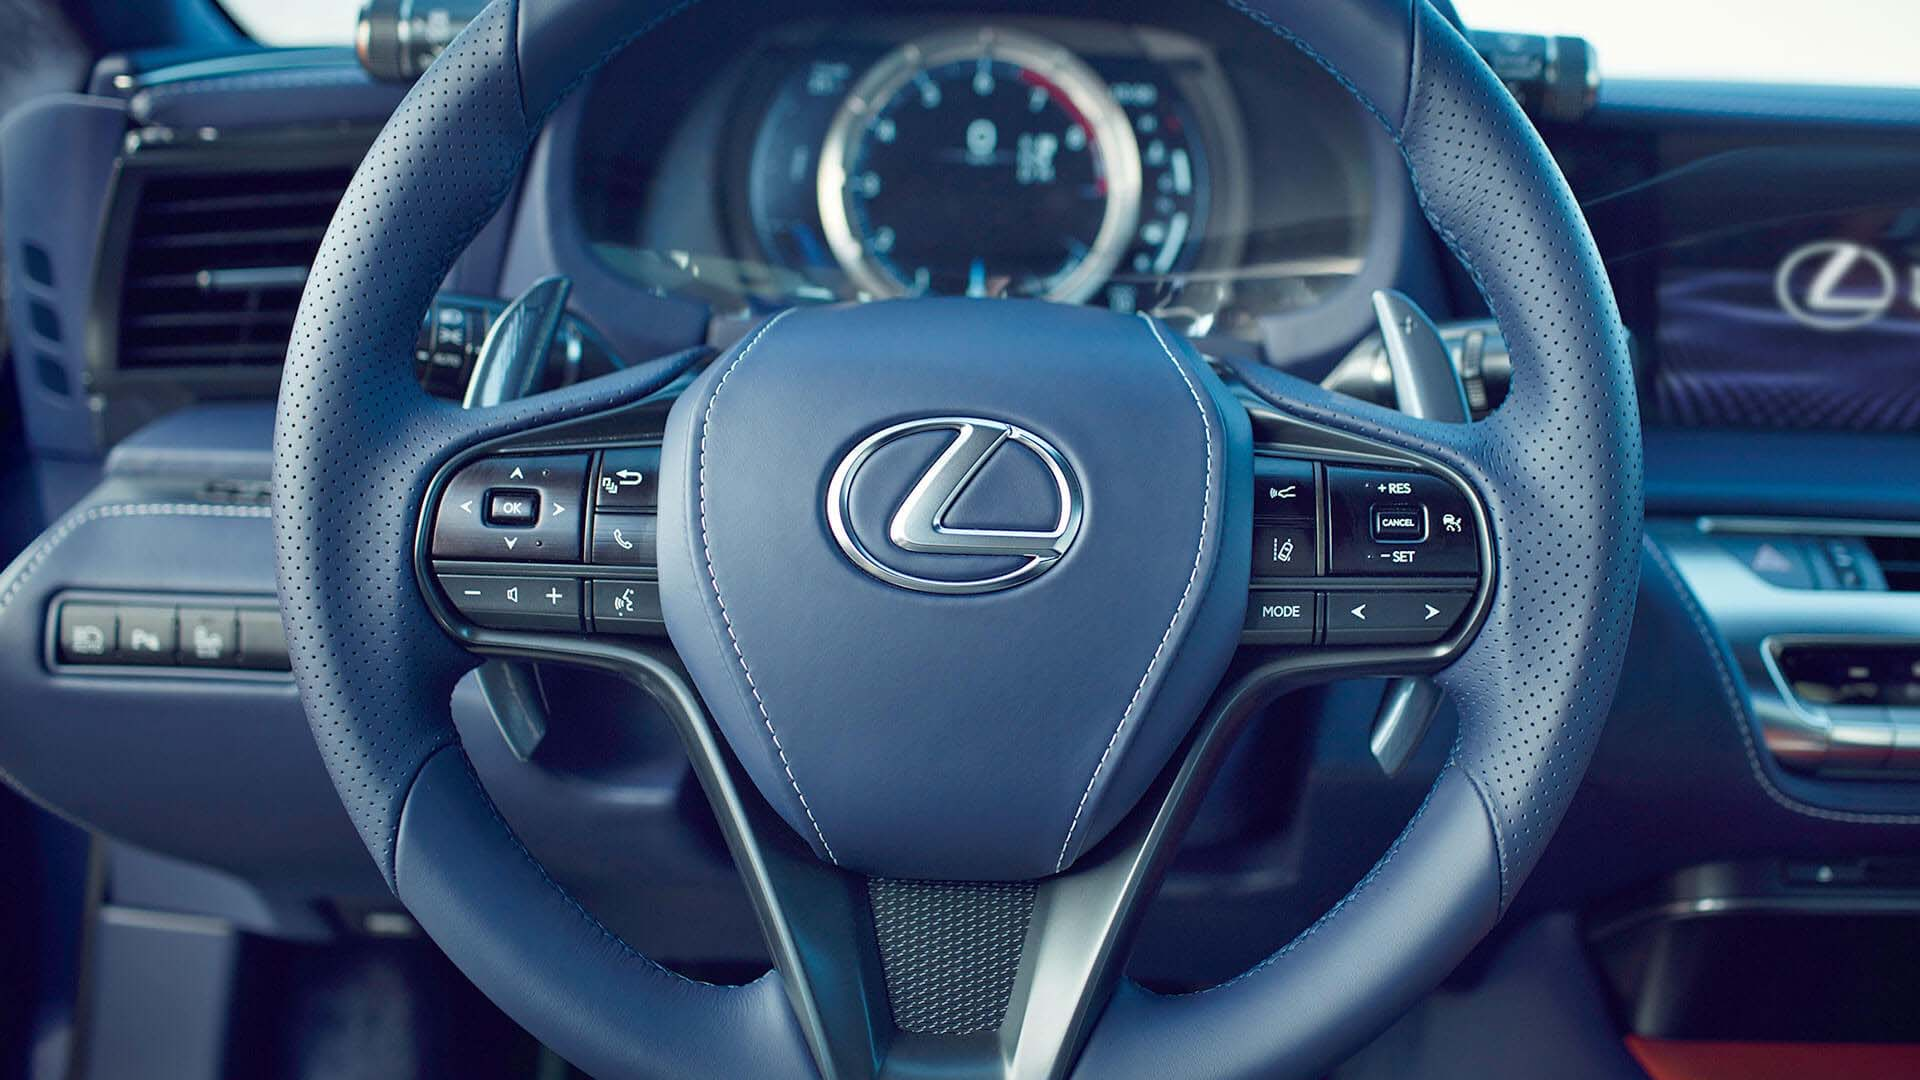 2017 lexus lc features intuitive display